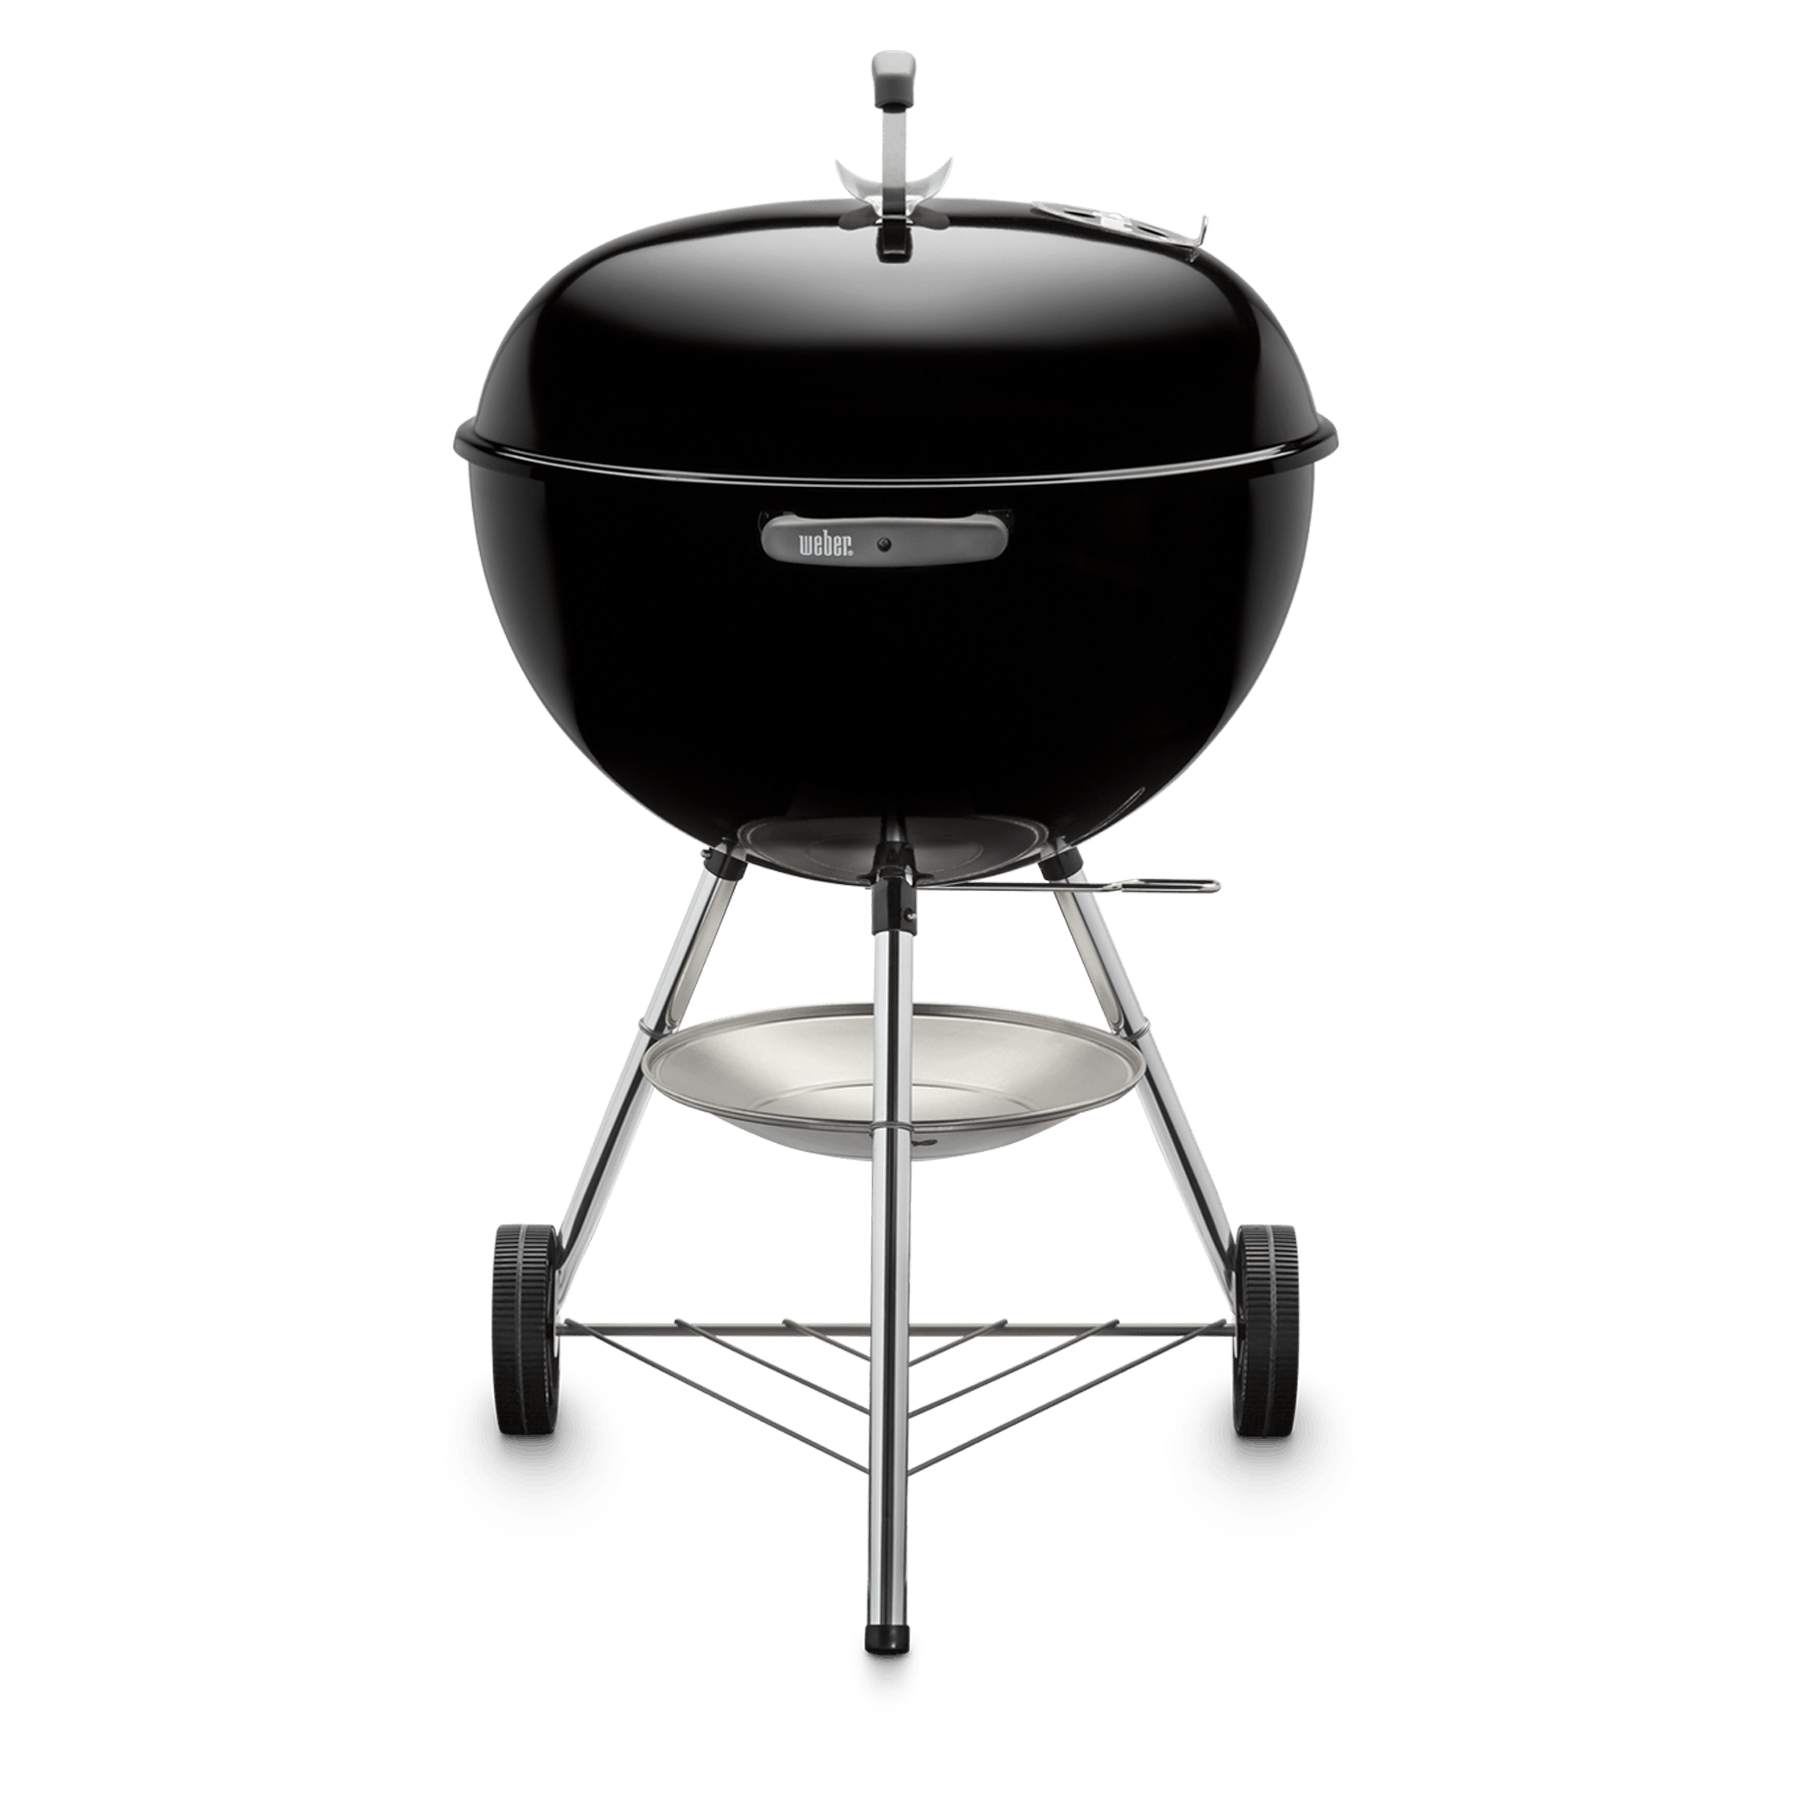 Charcoal Bbq Weber 22 Original Kettle Charcoal Grill Weber Grills